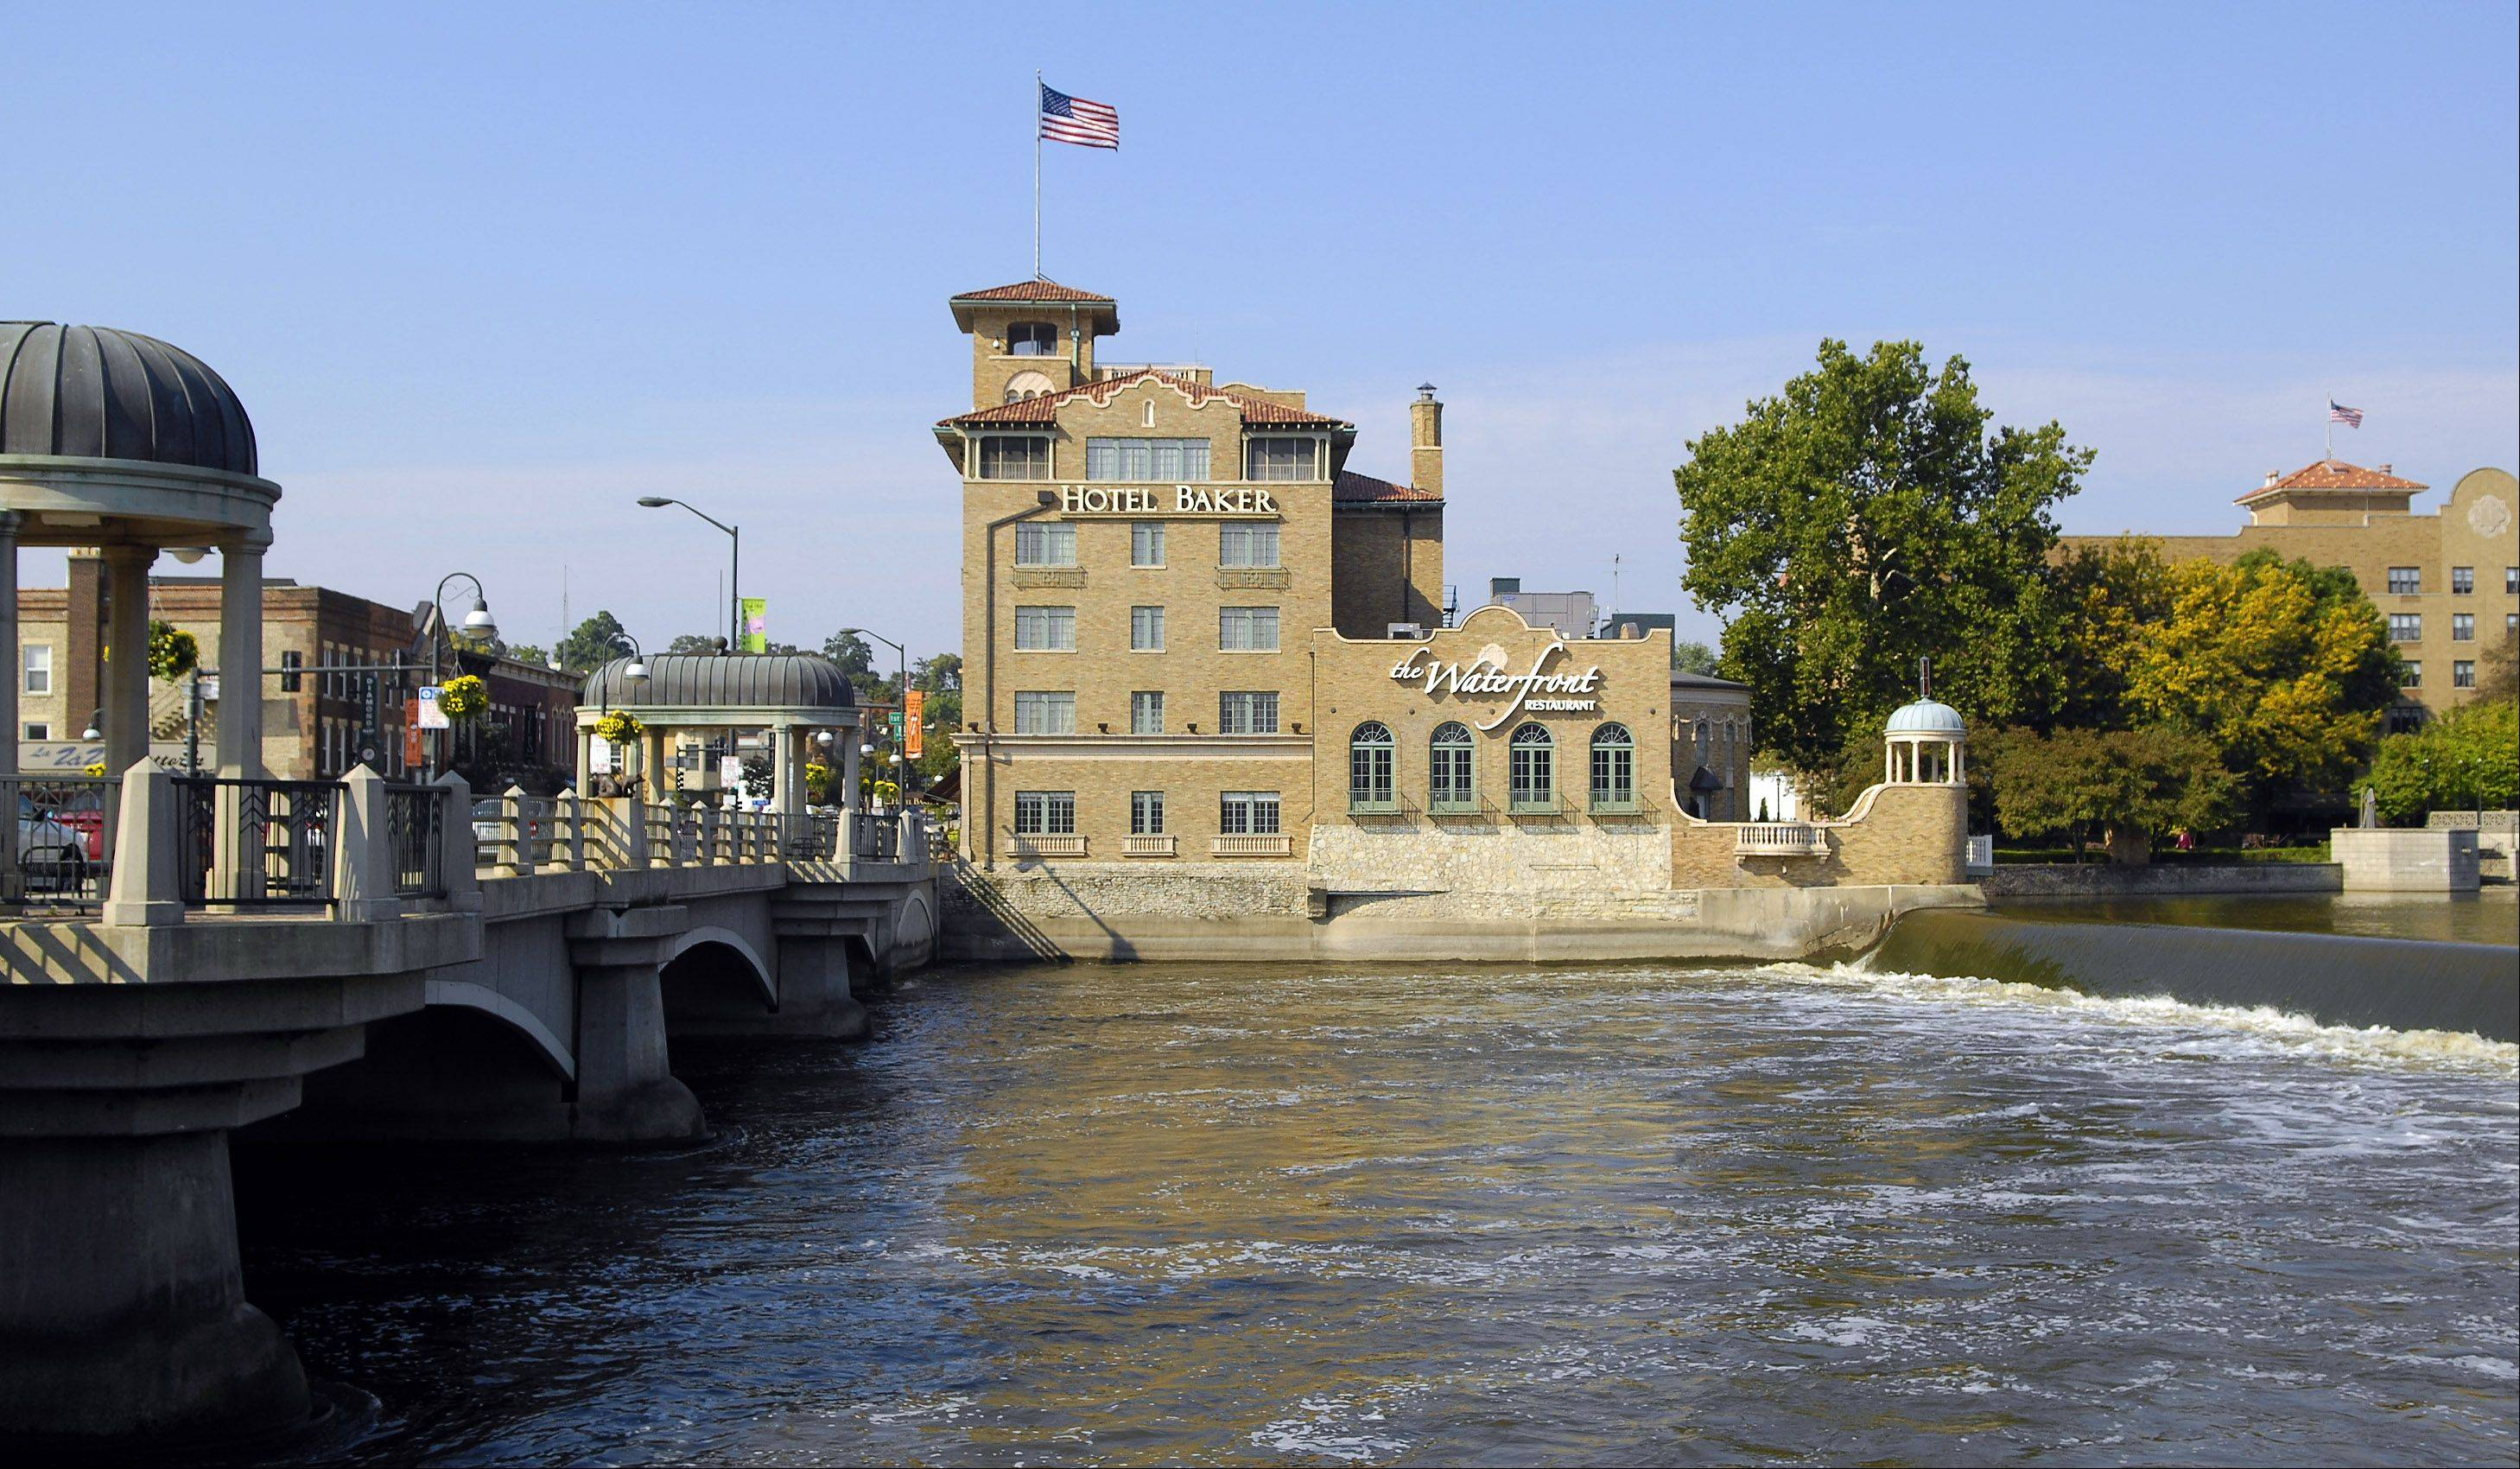 Hotel Baker is a main tourist attraction in St. Charles, which was named the best city in the country to raise a family by Family Circle magazine.